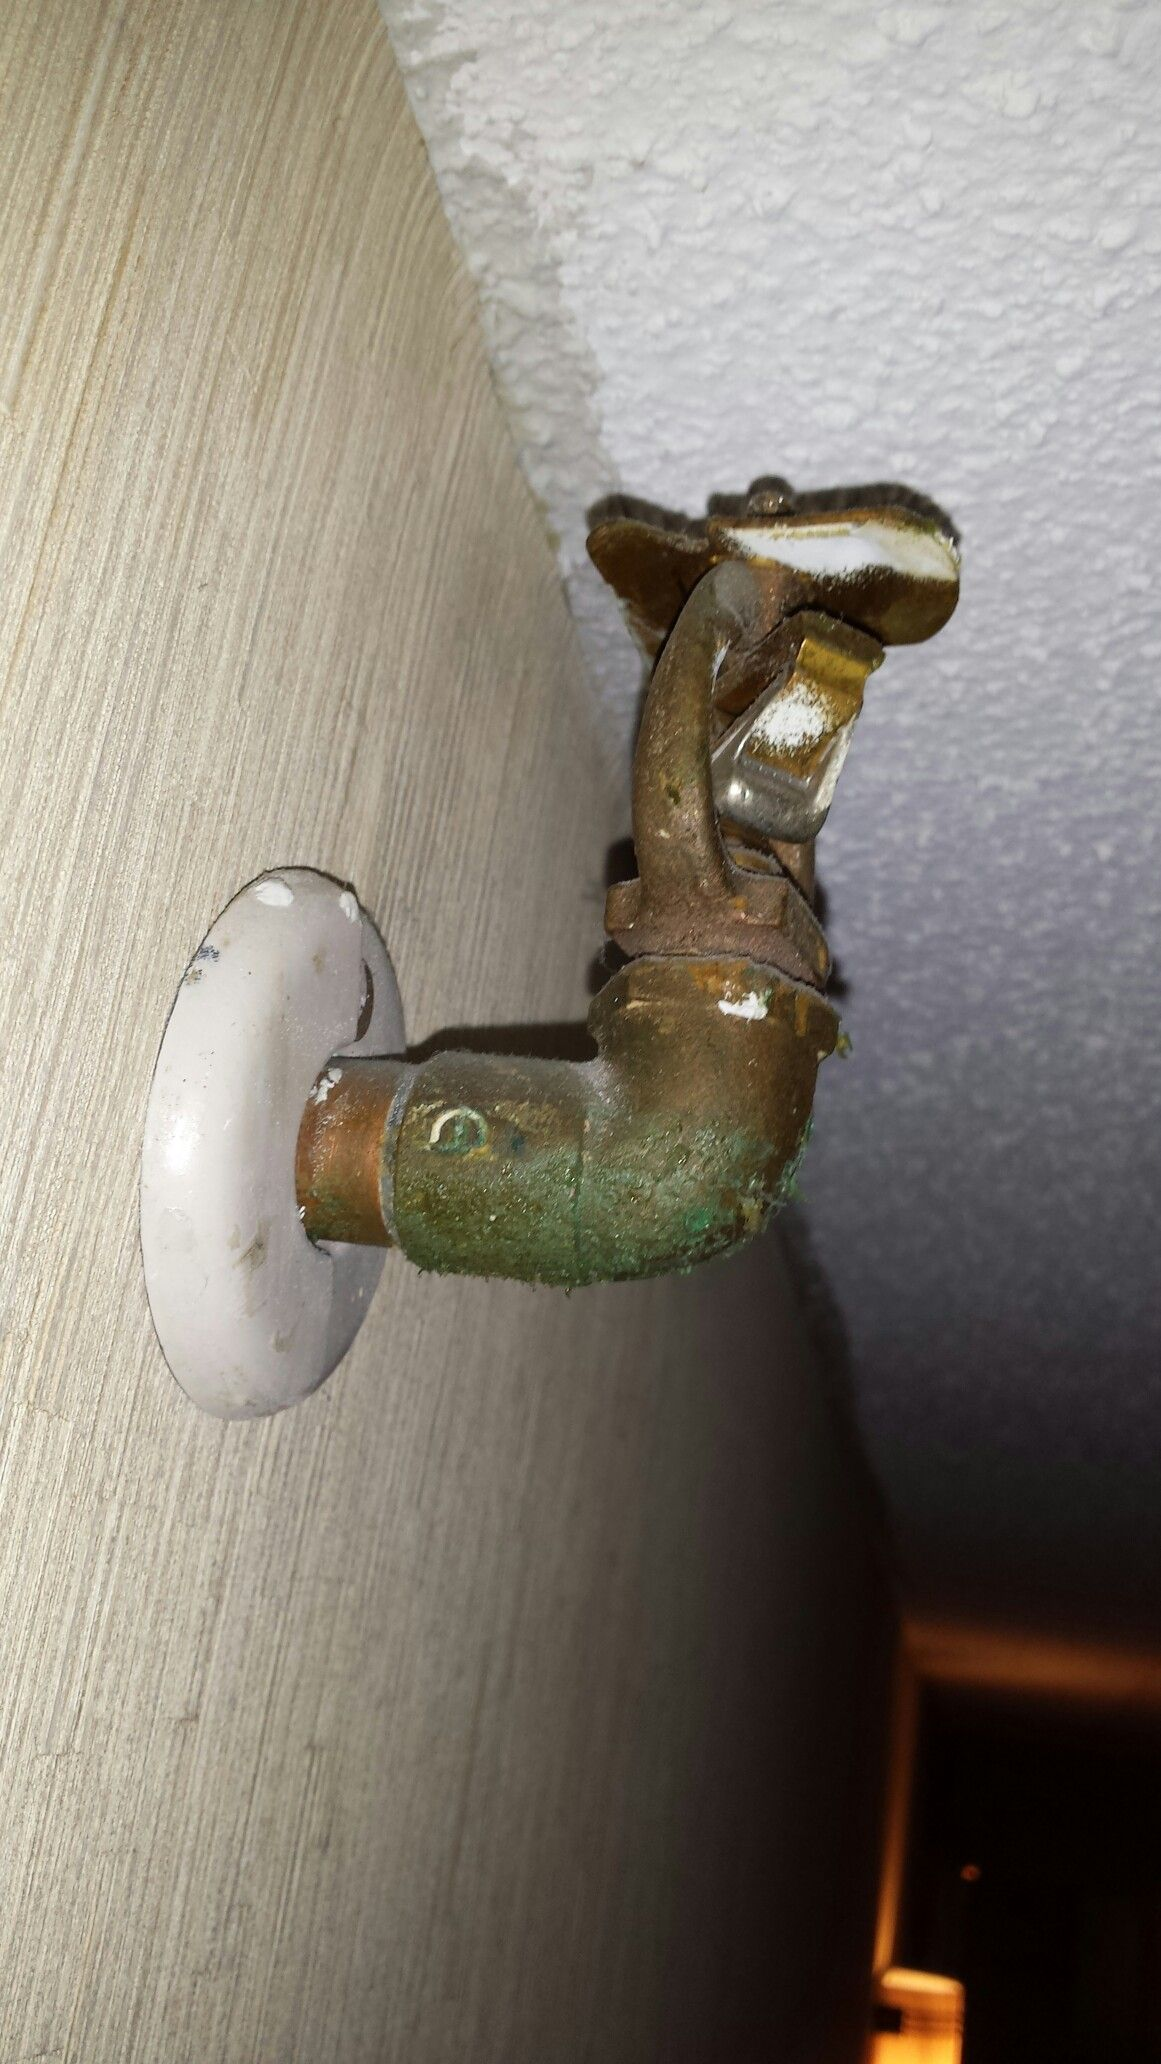 The threat is real! Mold like substance found at